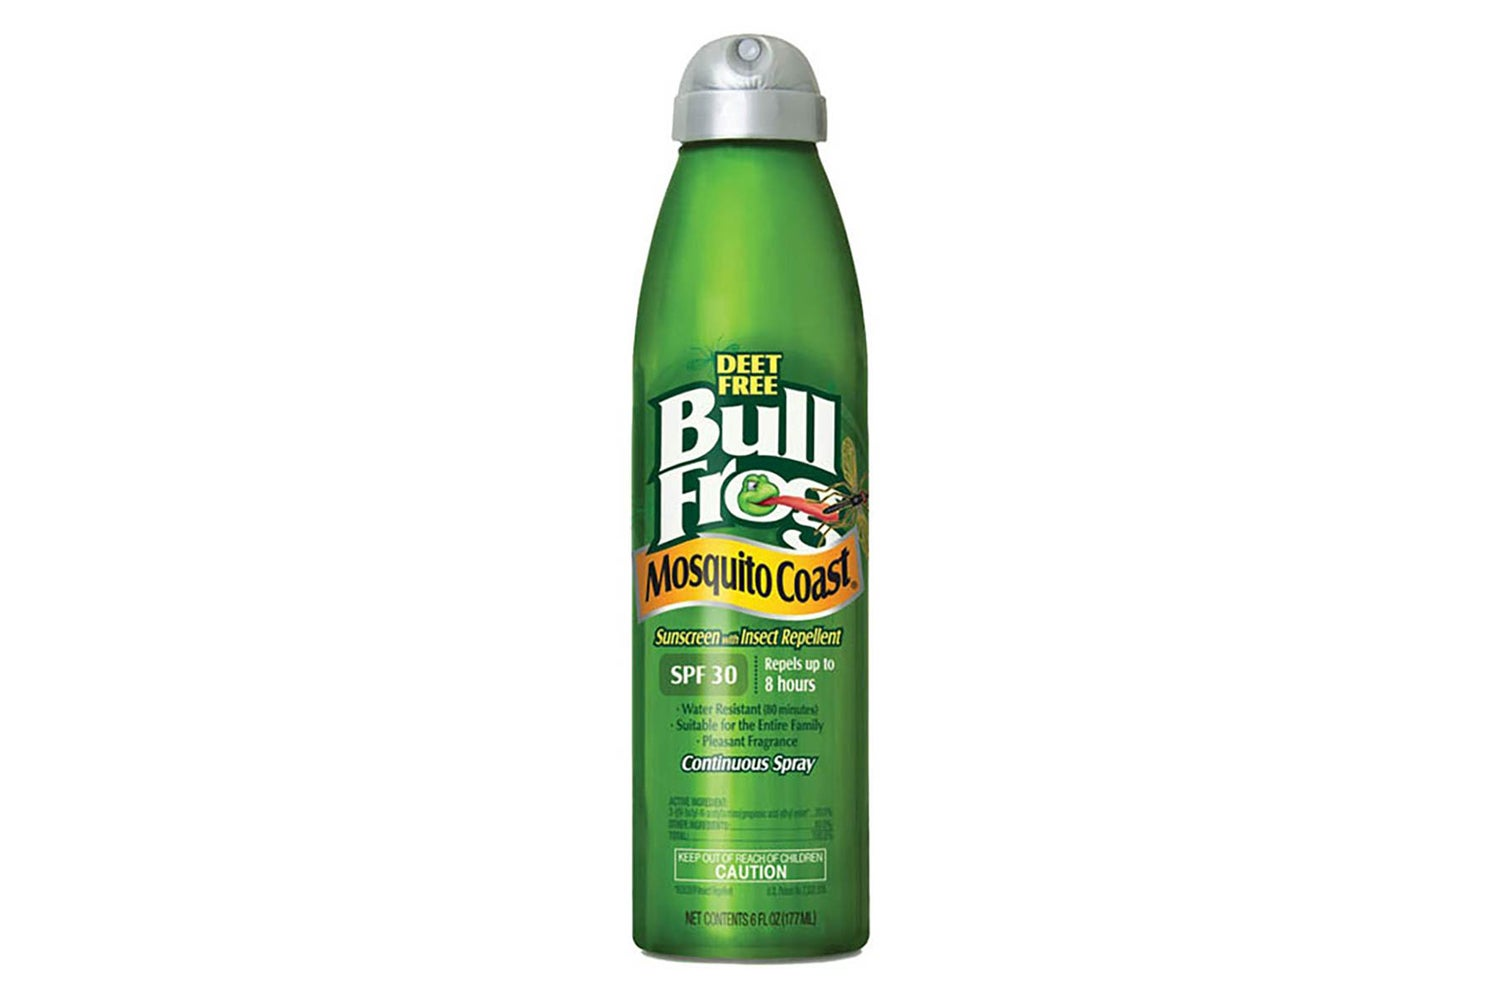 bull frog mosquito sunscreen repellent